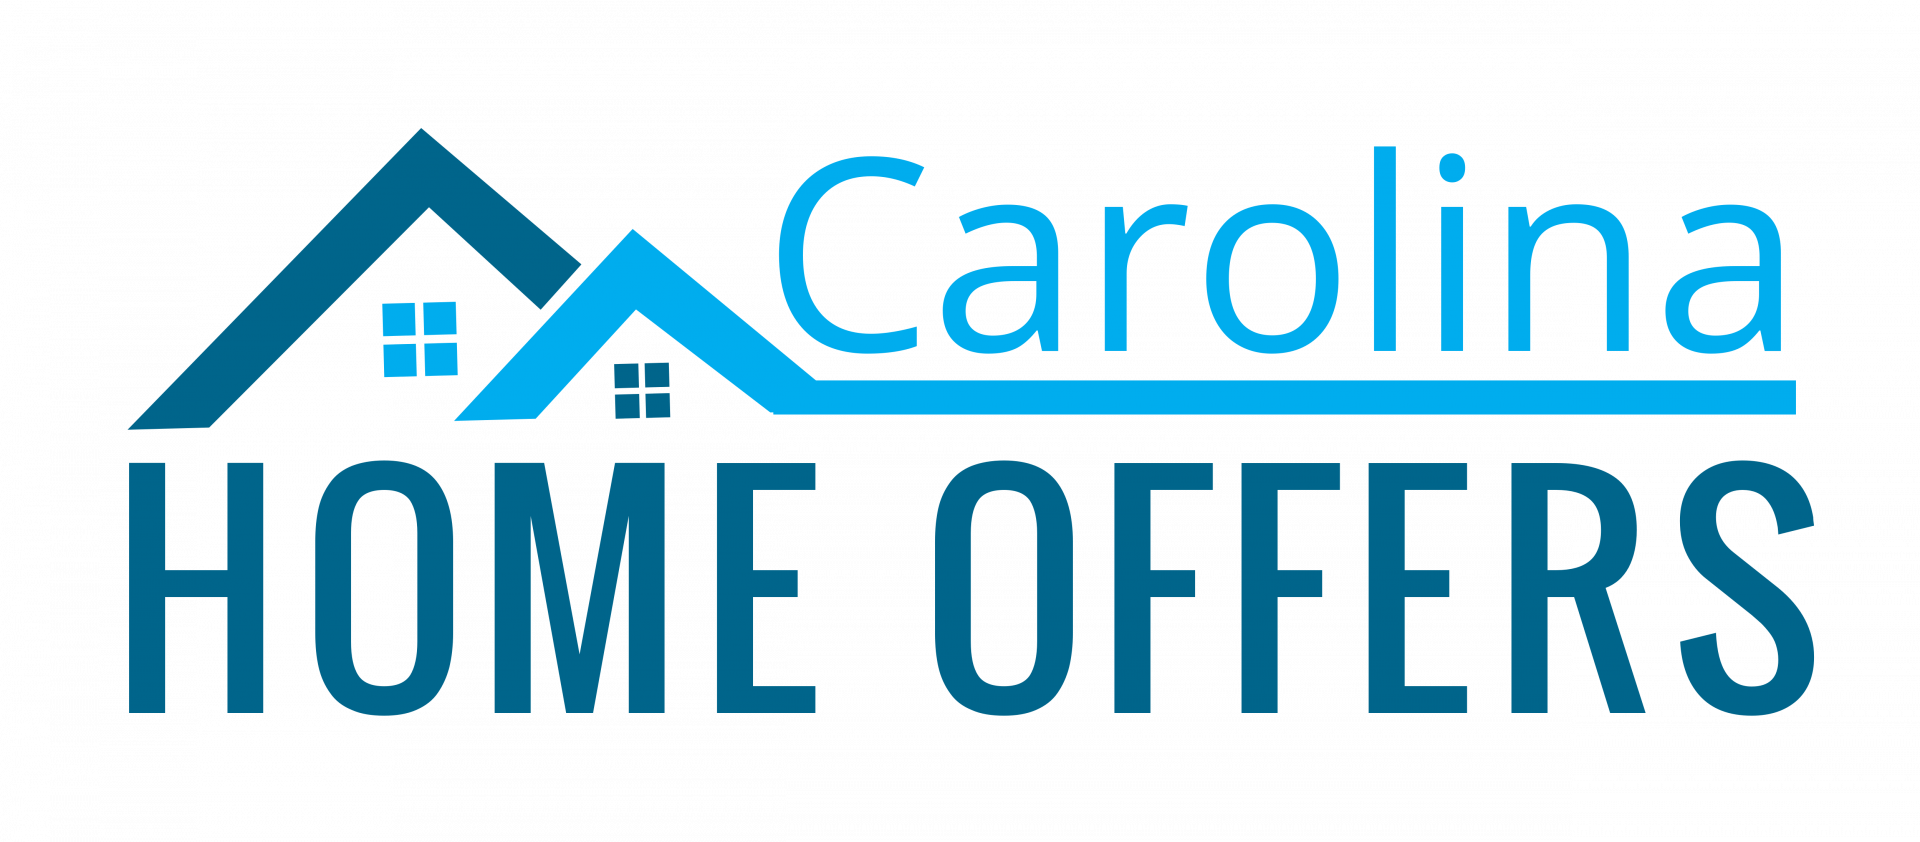 Carolina Home Offers.com logo